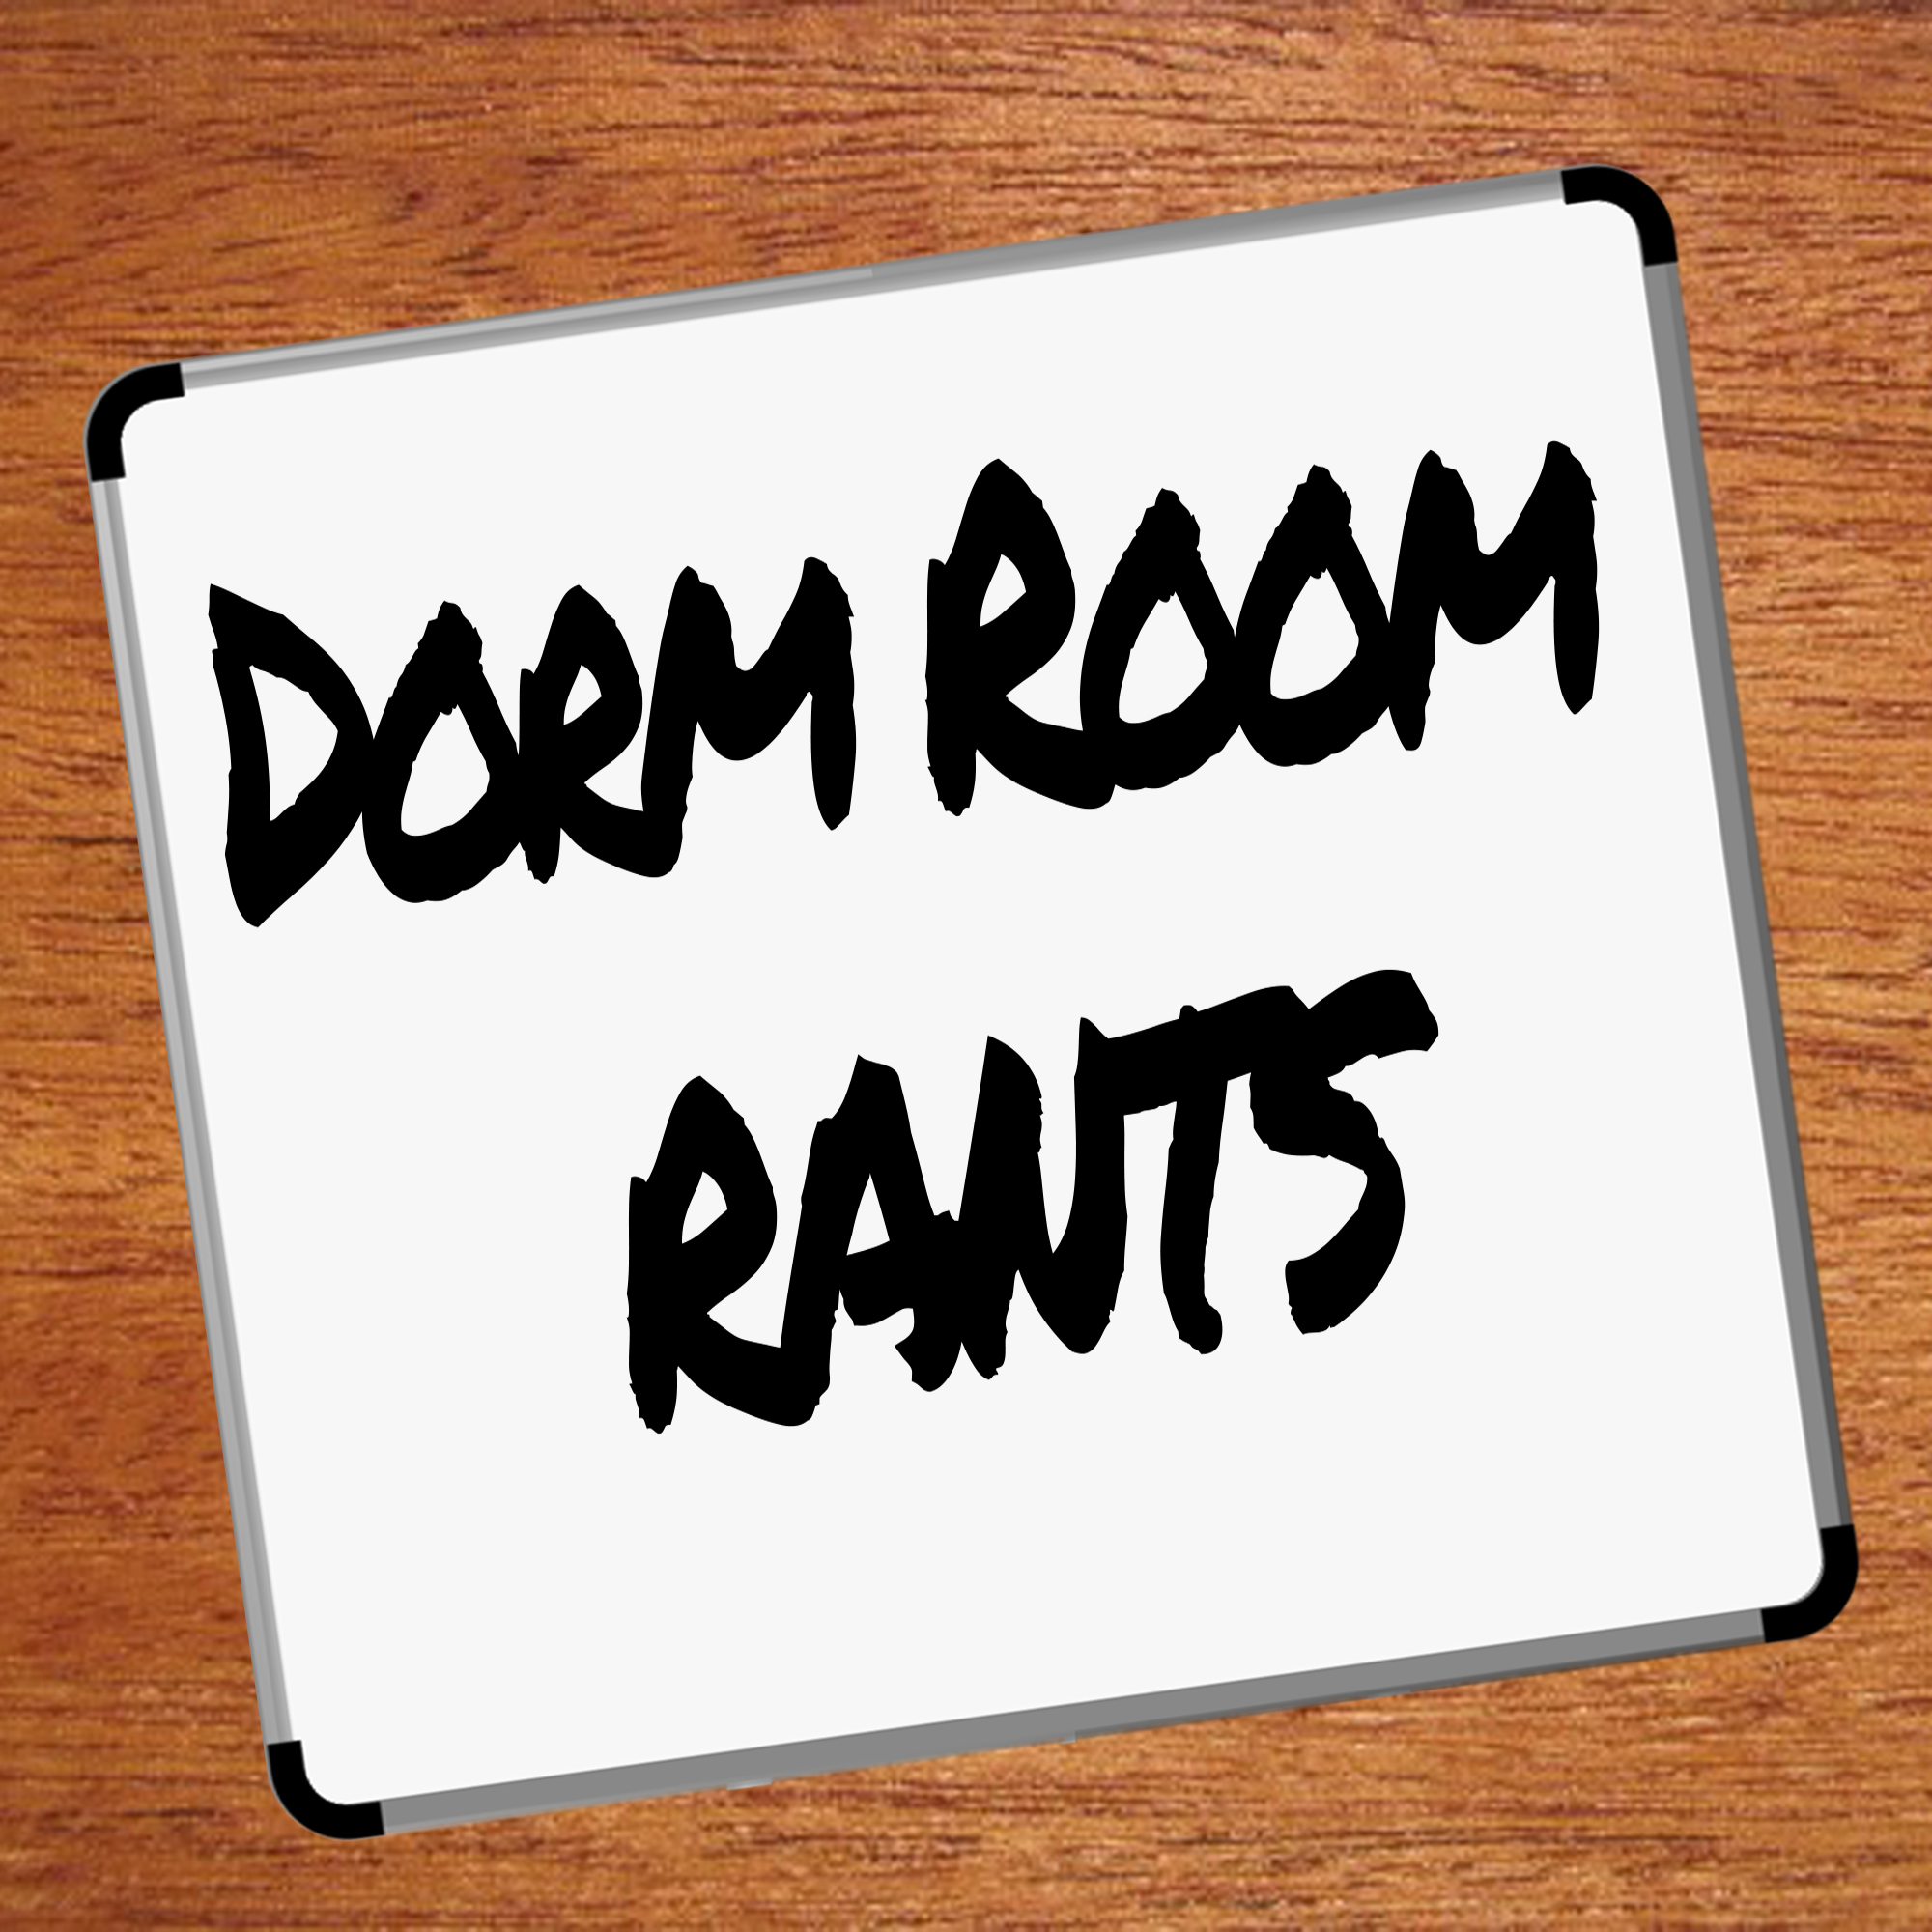 Dorm Room Rants